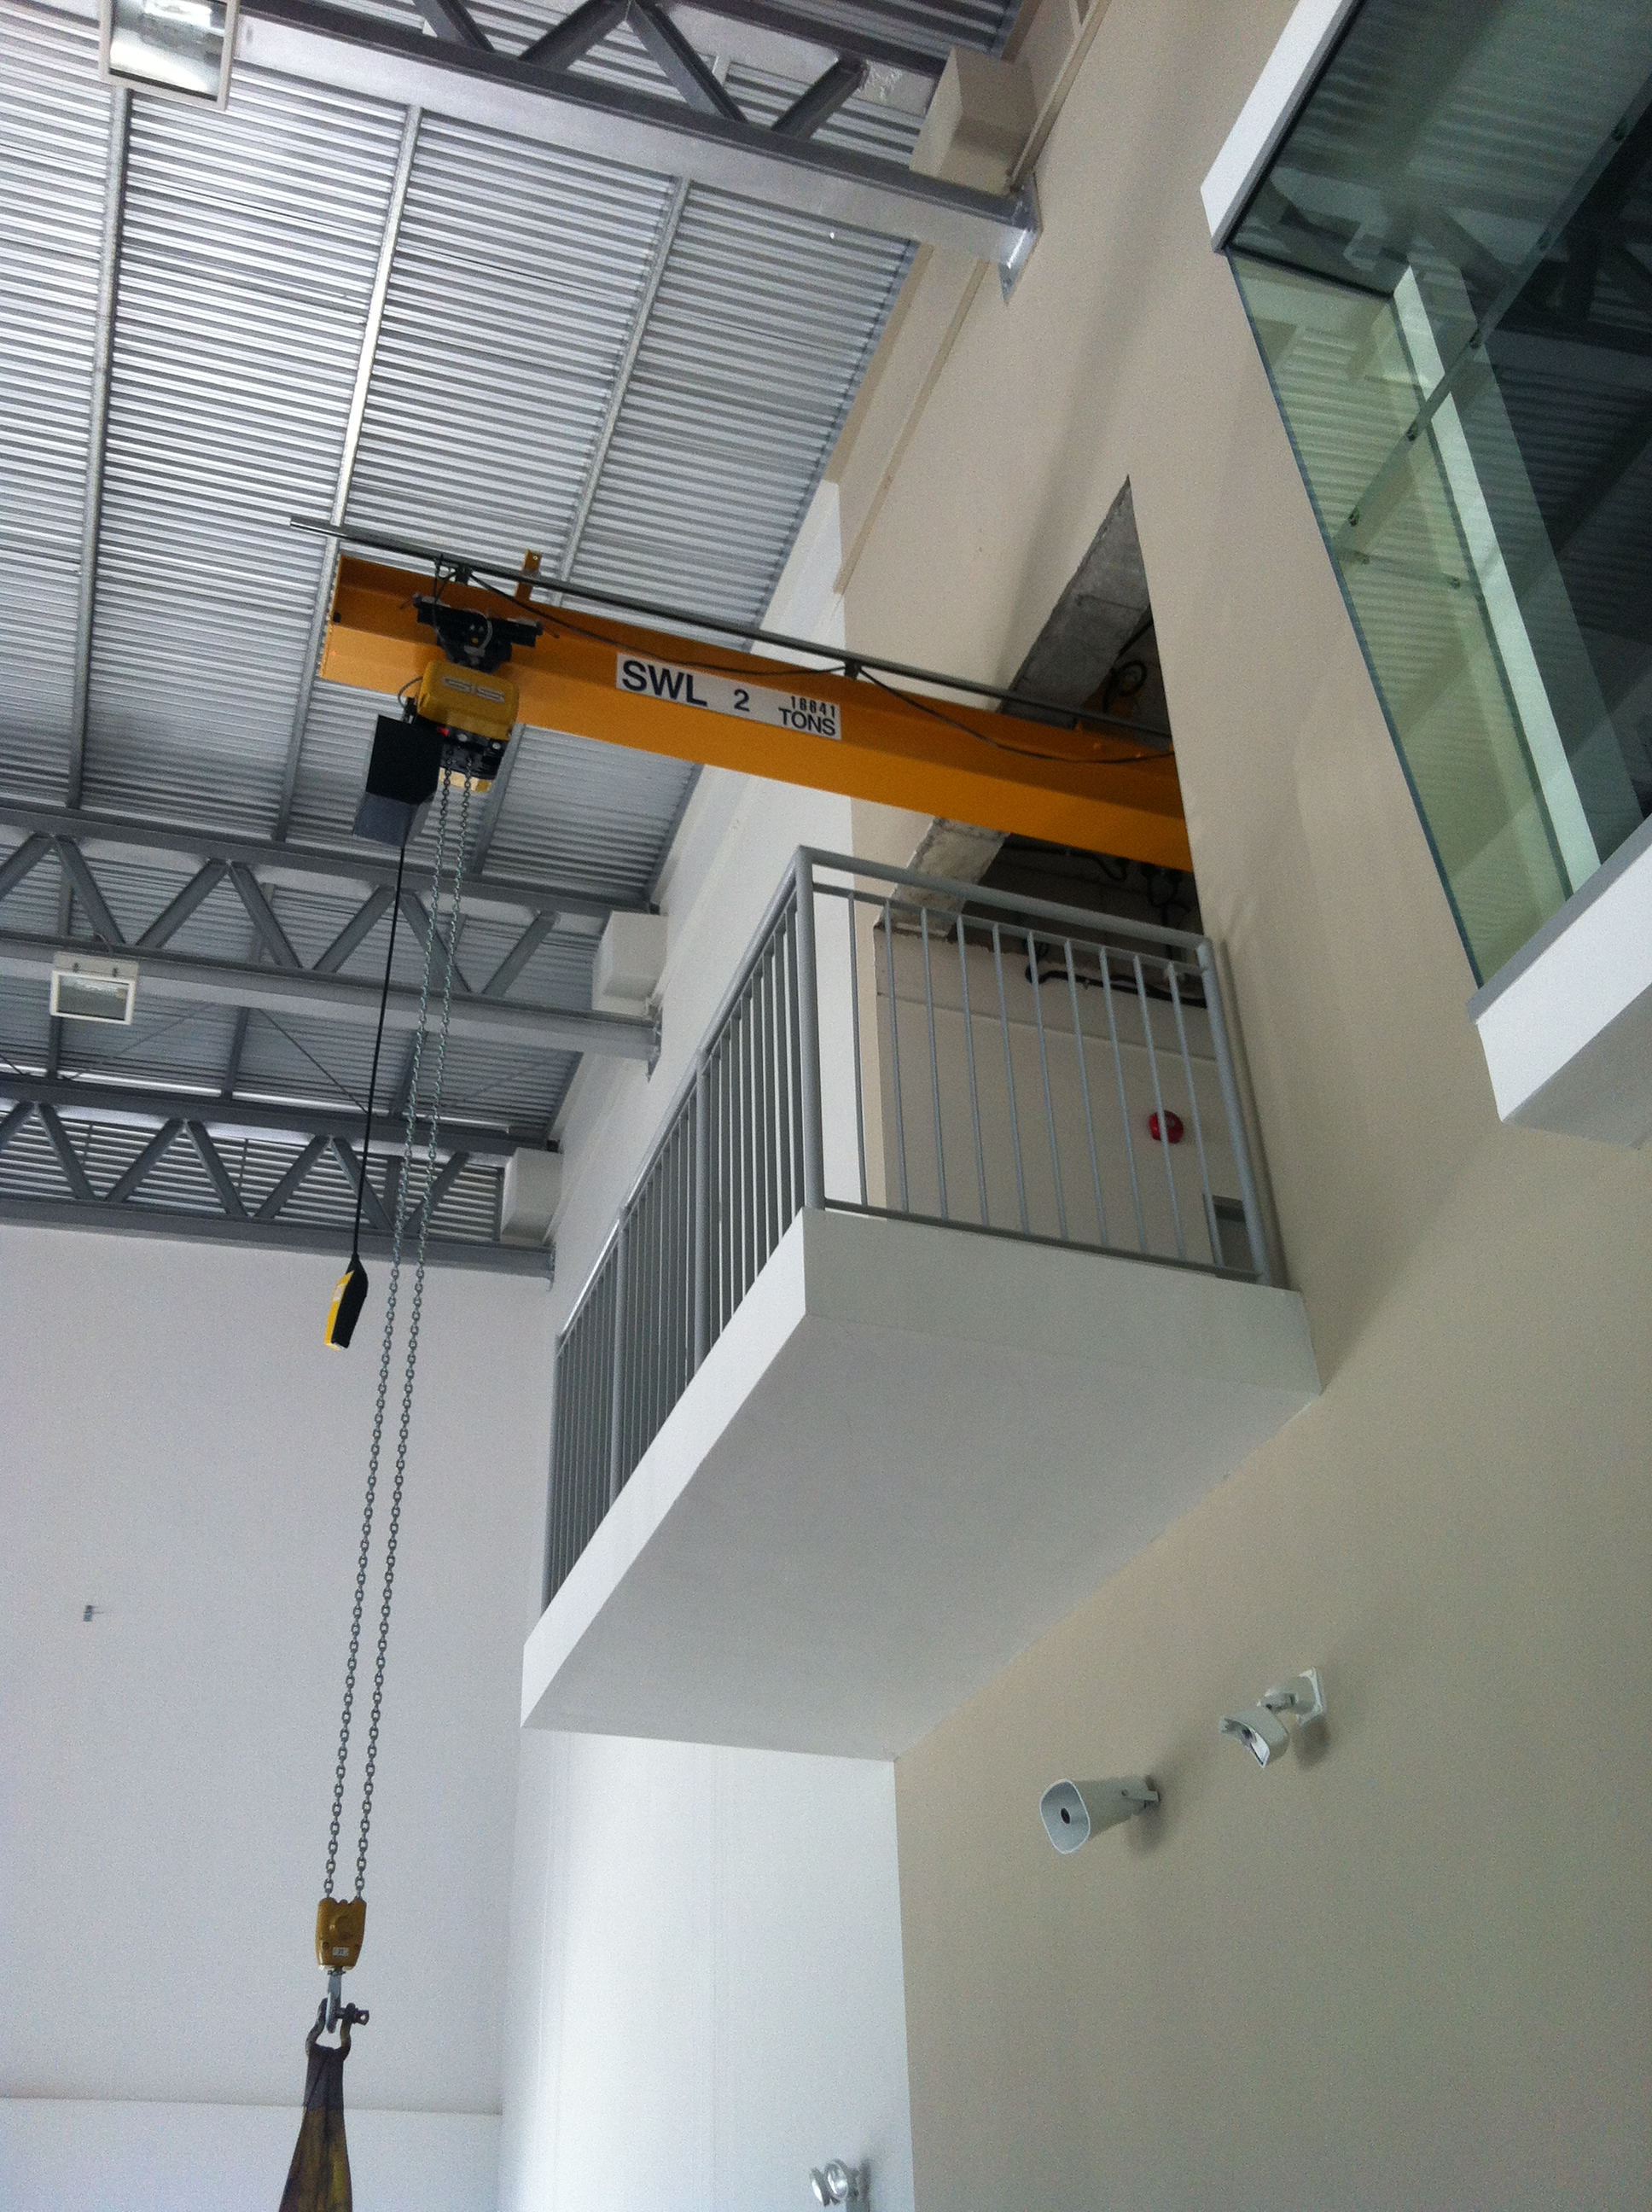 Monorail Amp Retractable Crane System Interlift